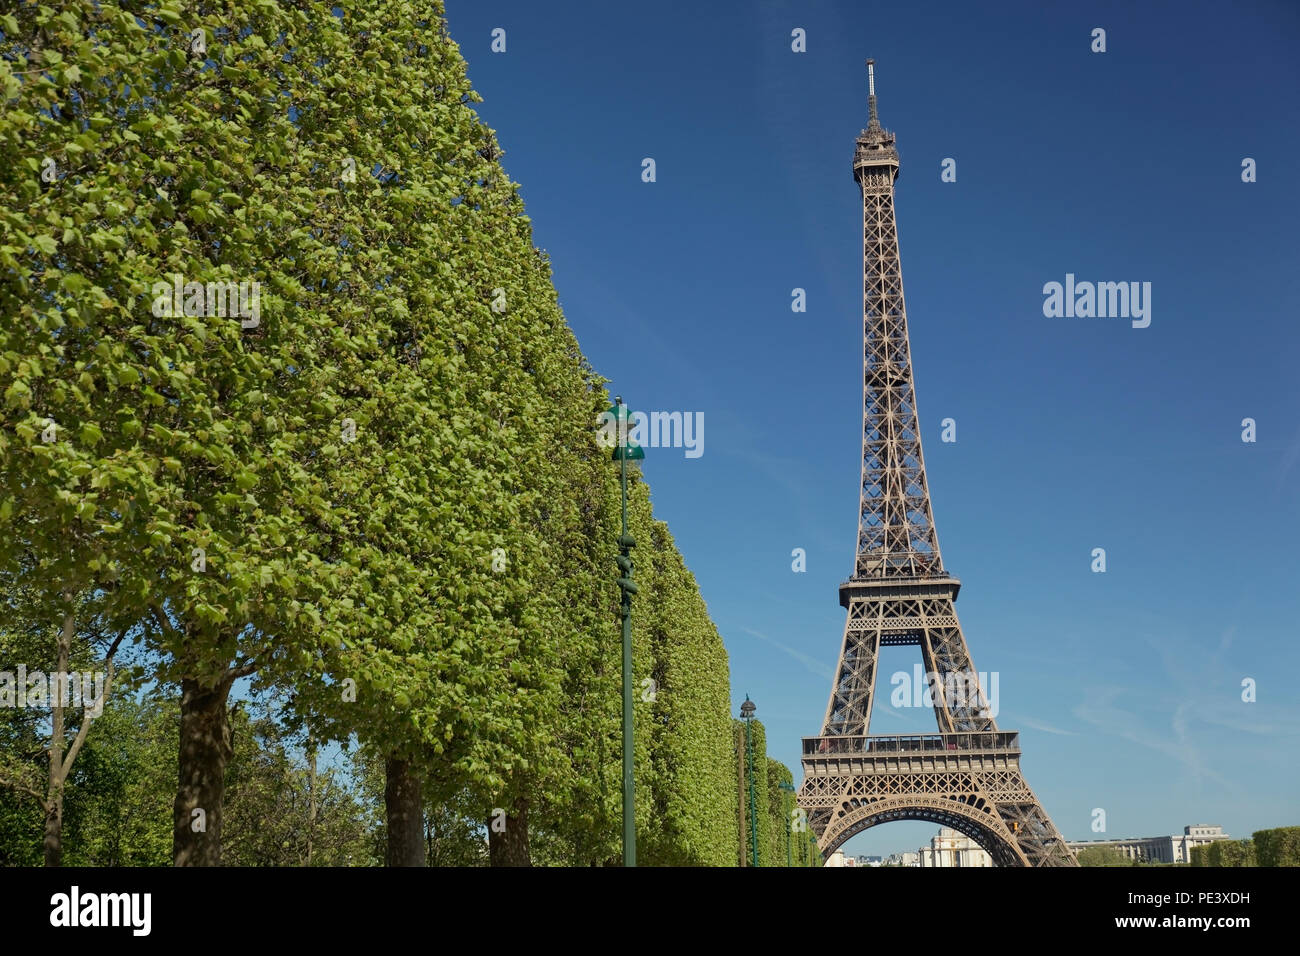 The Eiffel Tower shot from different locations and angles with close ups and long shots, Paris, France. Stock Photo